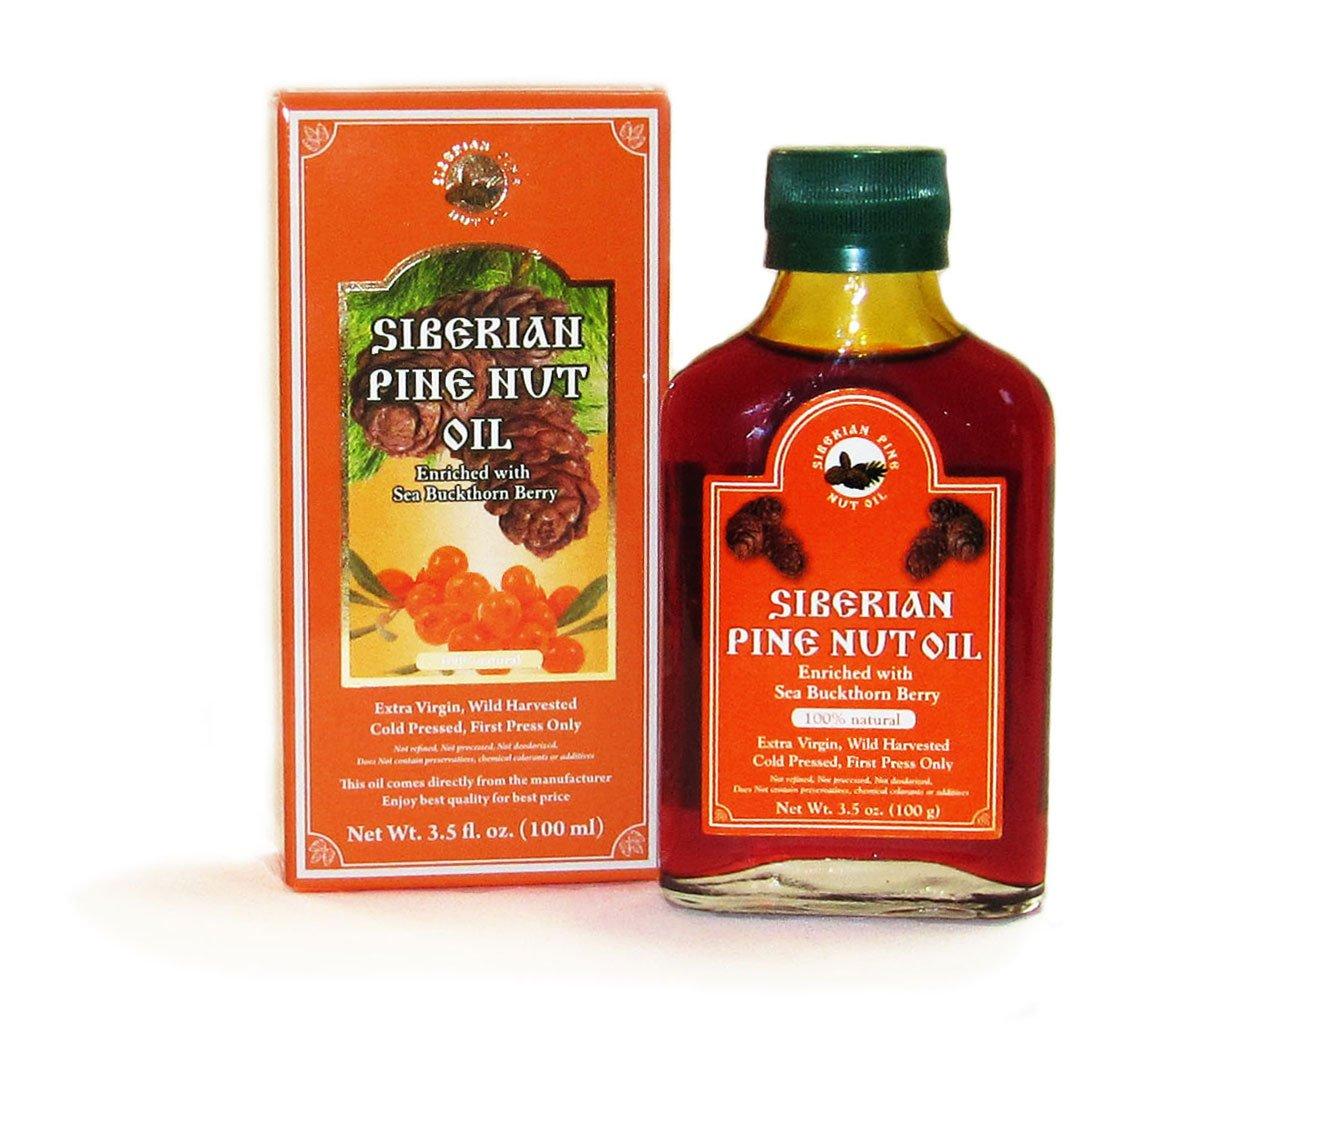 Pine Nut Oil Enriched with Sea Buckthorn 3.5 Fl. Oz. (100 Ml) Therapeutic Grade, Extra Virgin, Cold-pressed. 100% Natural and Authentic. Pressed From Wild Harvested, Organic, Raw Pine Nuts. by Siberian Pine Nut Oil